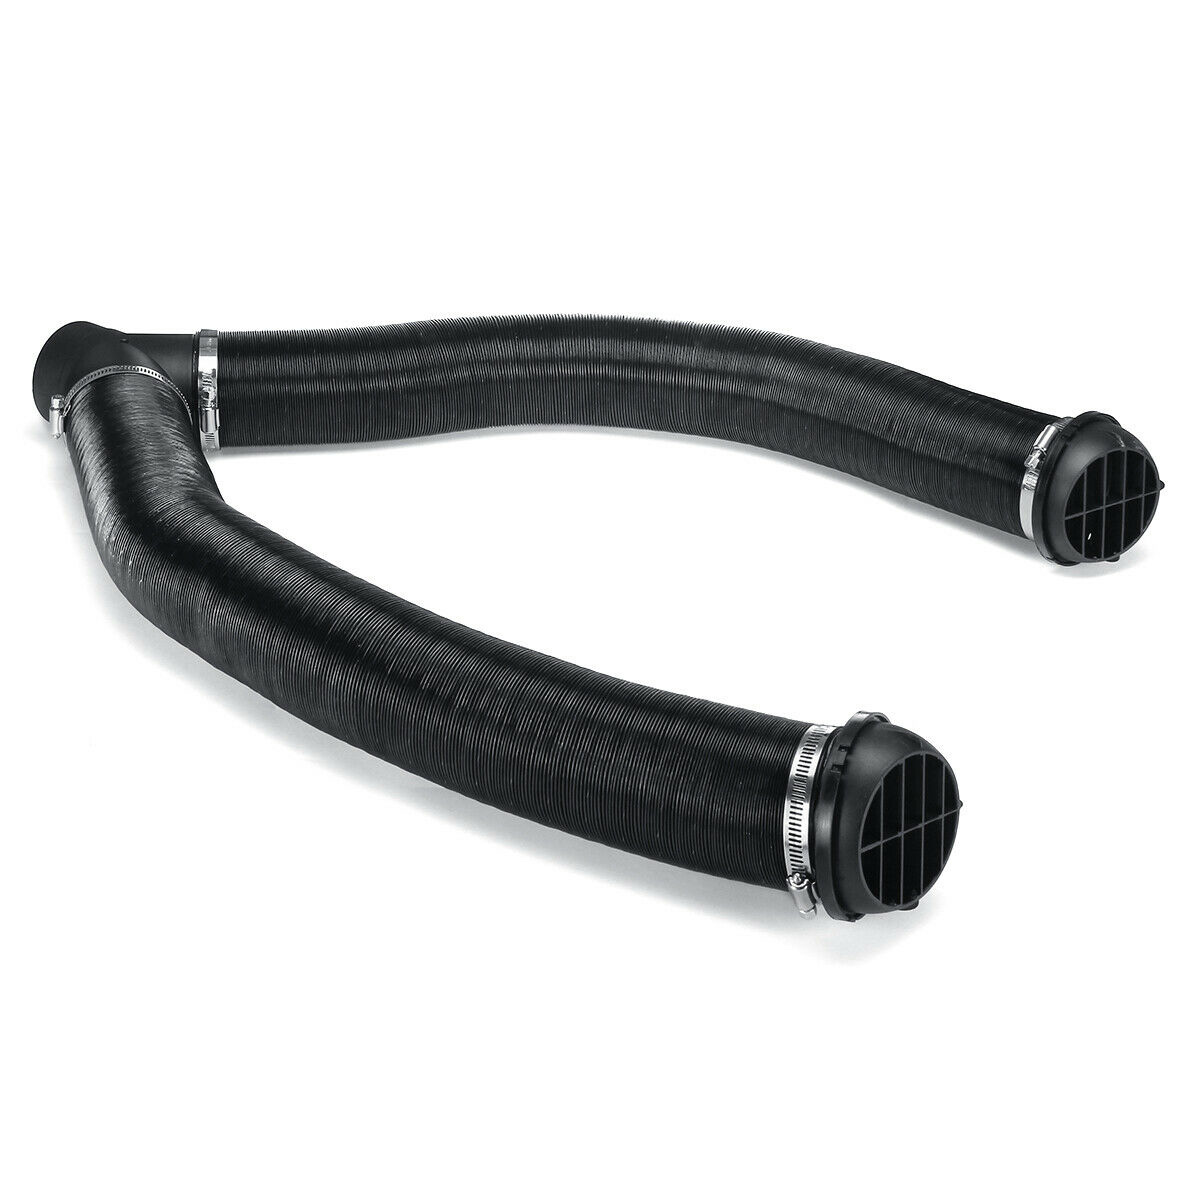 75mm Heater Pipe Duct Warm Air Outlet Vent Outlet Y Piece Branch Connector  ////